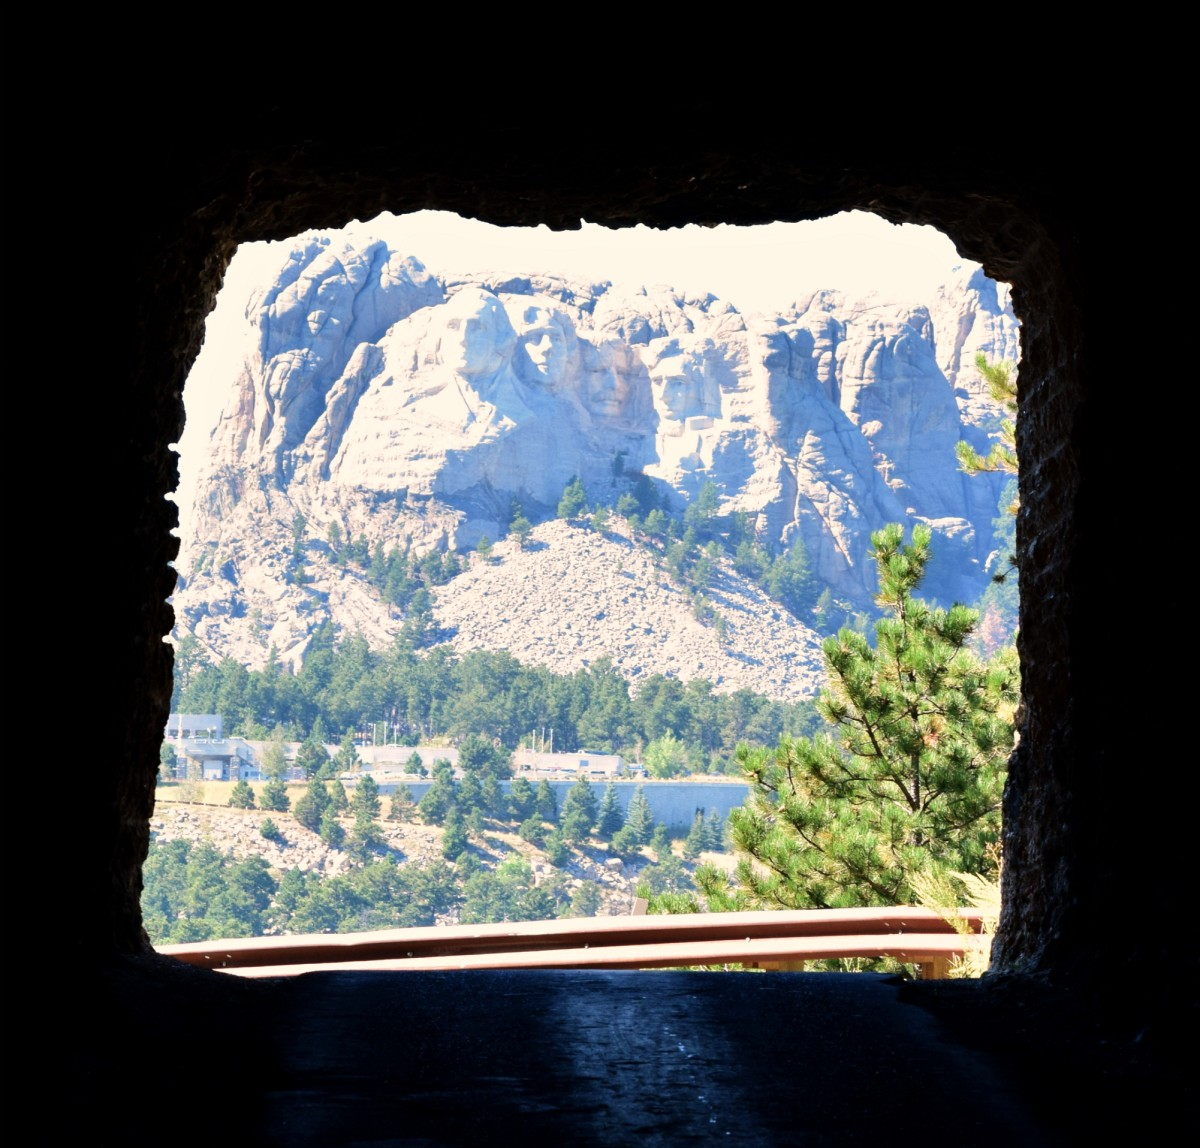 Mount Rushmore through a tunnel